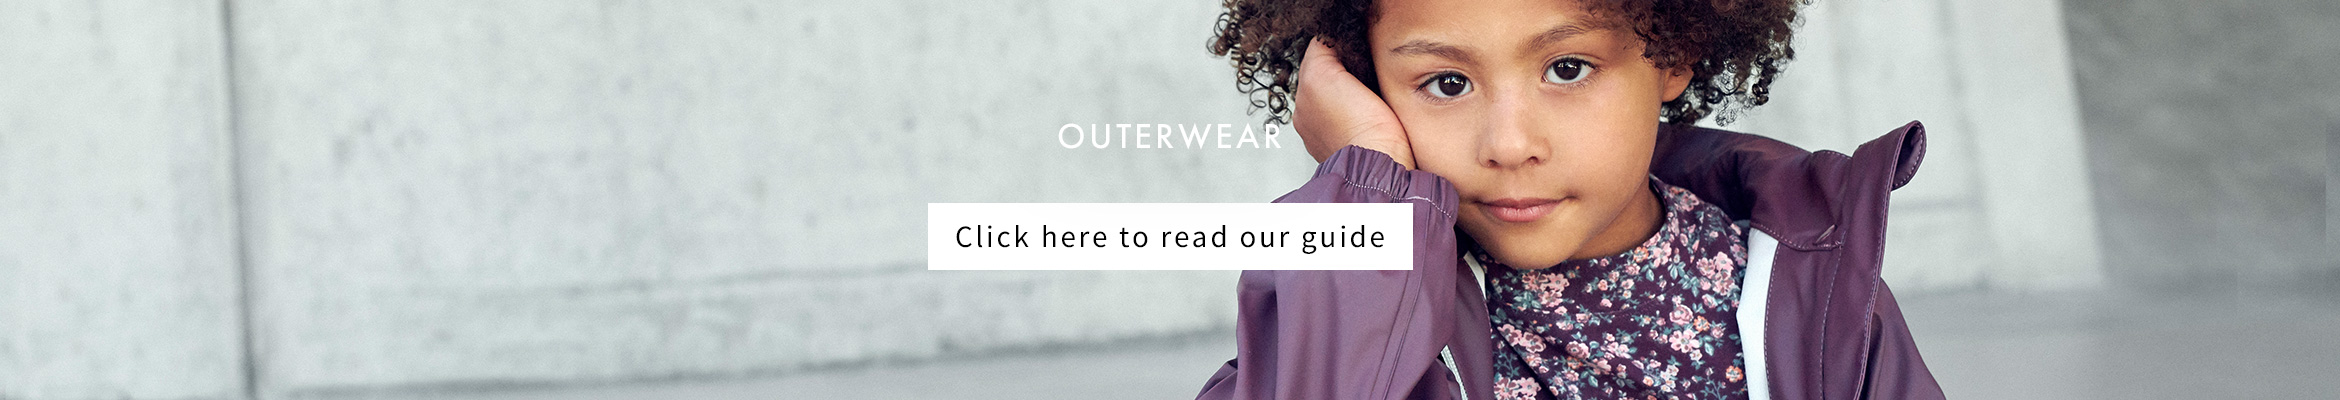 Outerwear_guide_en